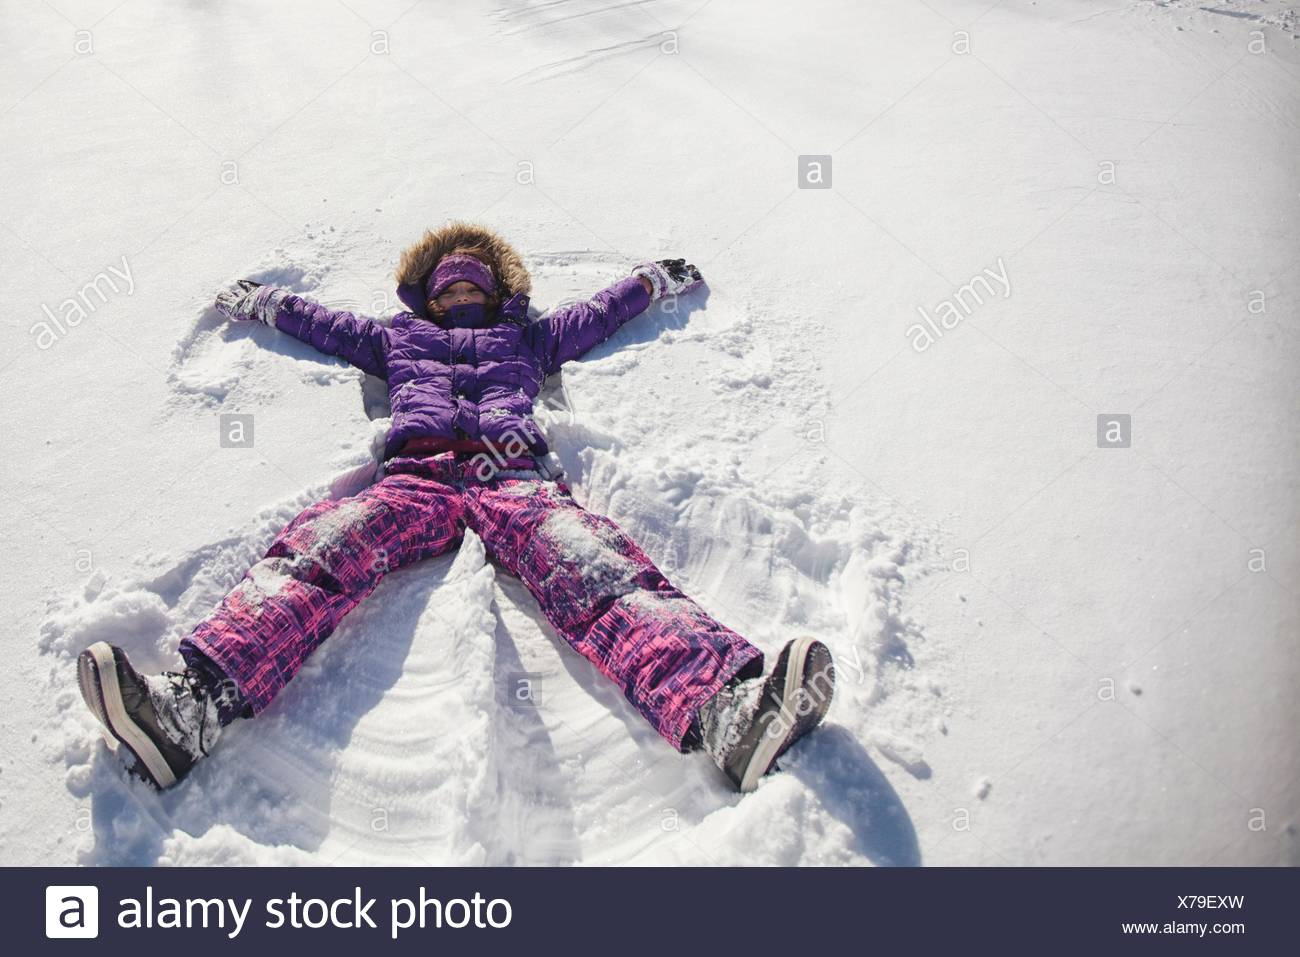 High angle view of girl wearing ski suit lying snow making snow angel - Stock Image